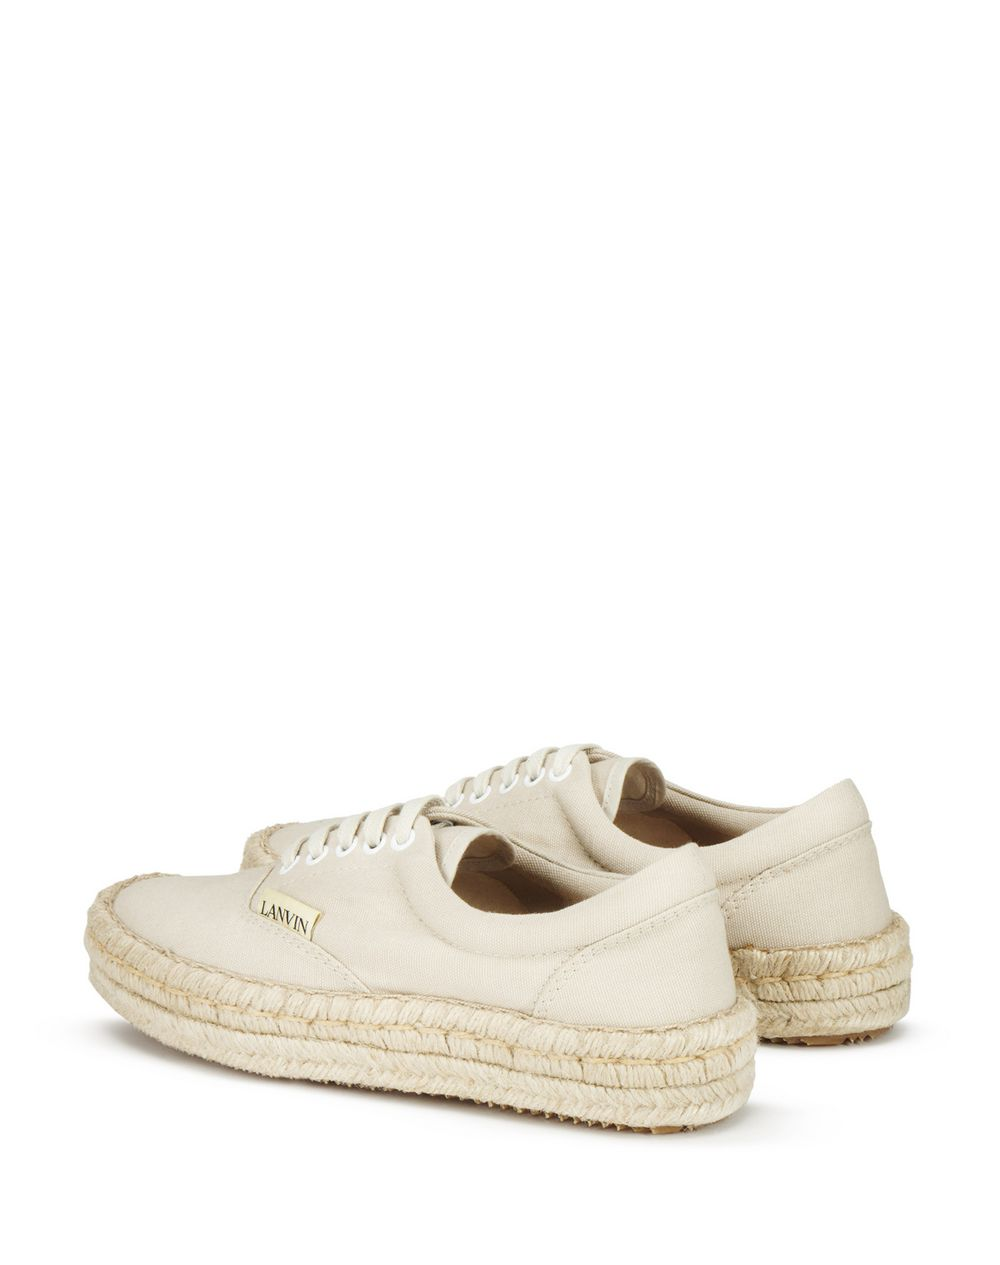 ESPADRILLE SNEAKER IN CANVAS COTTON - Lanvin